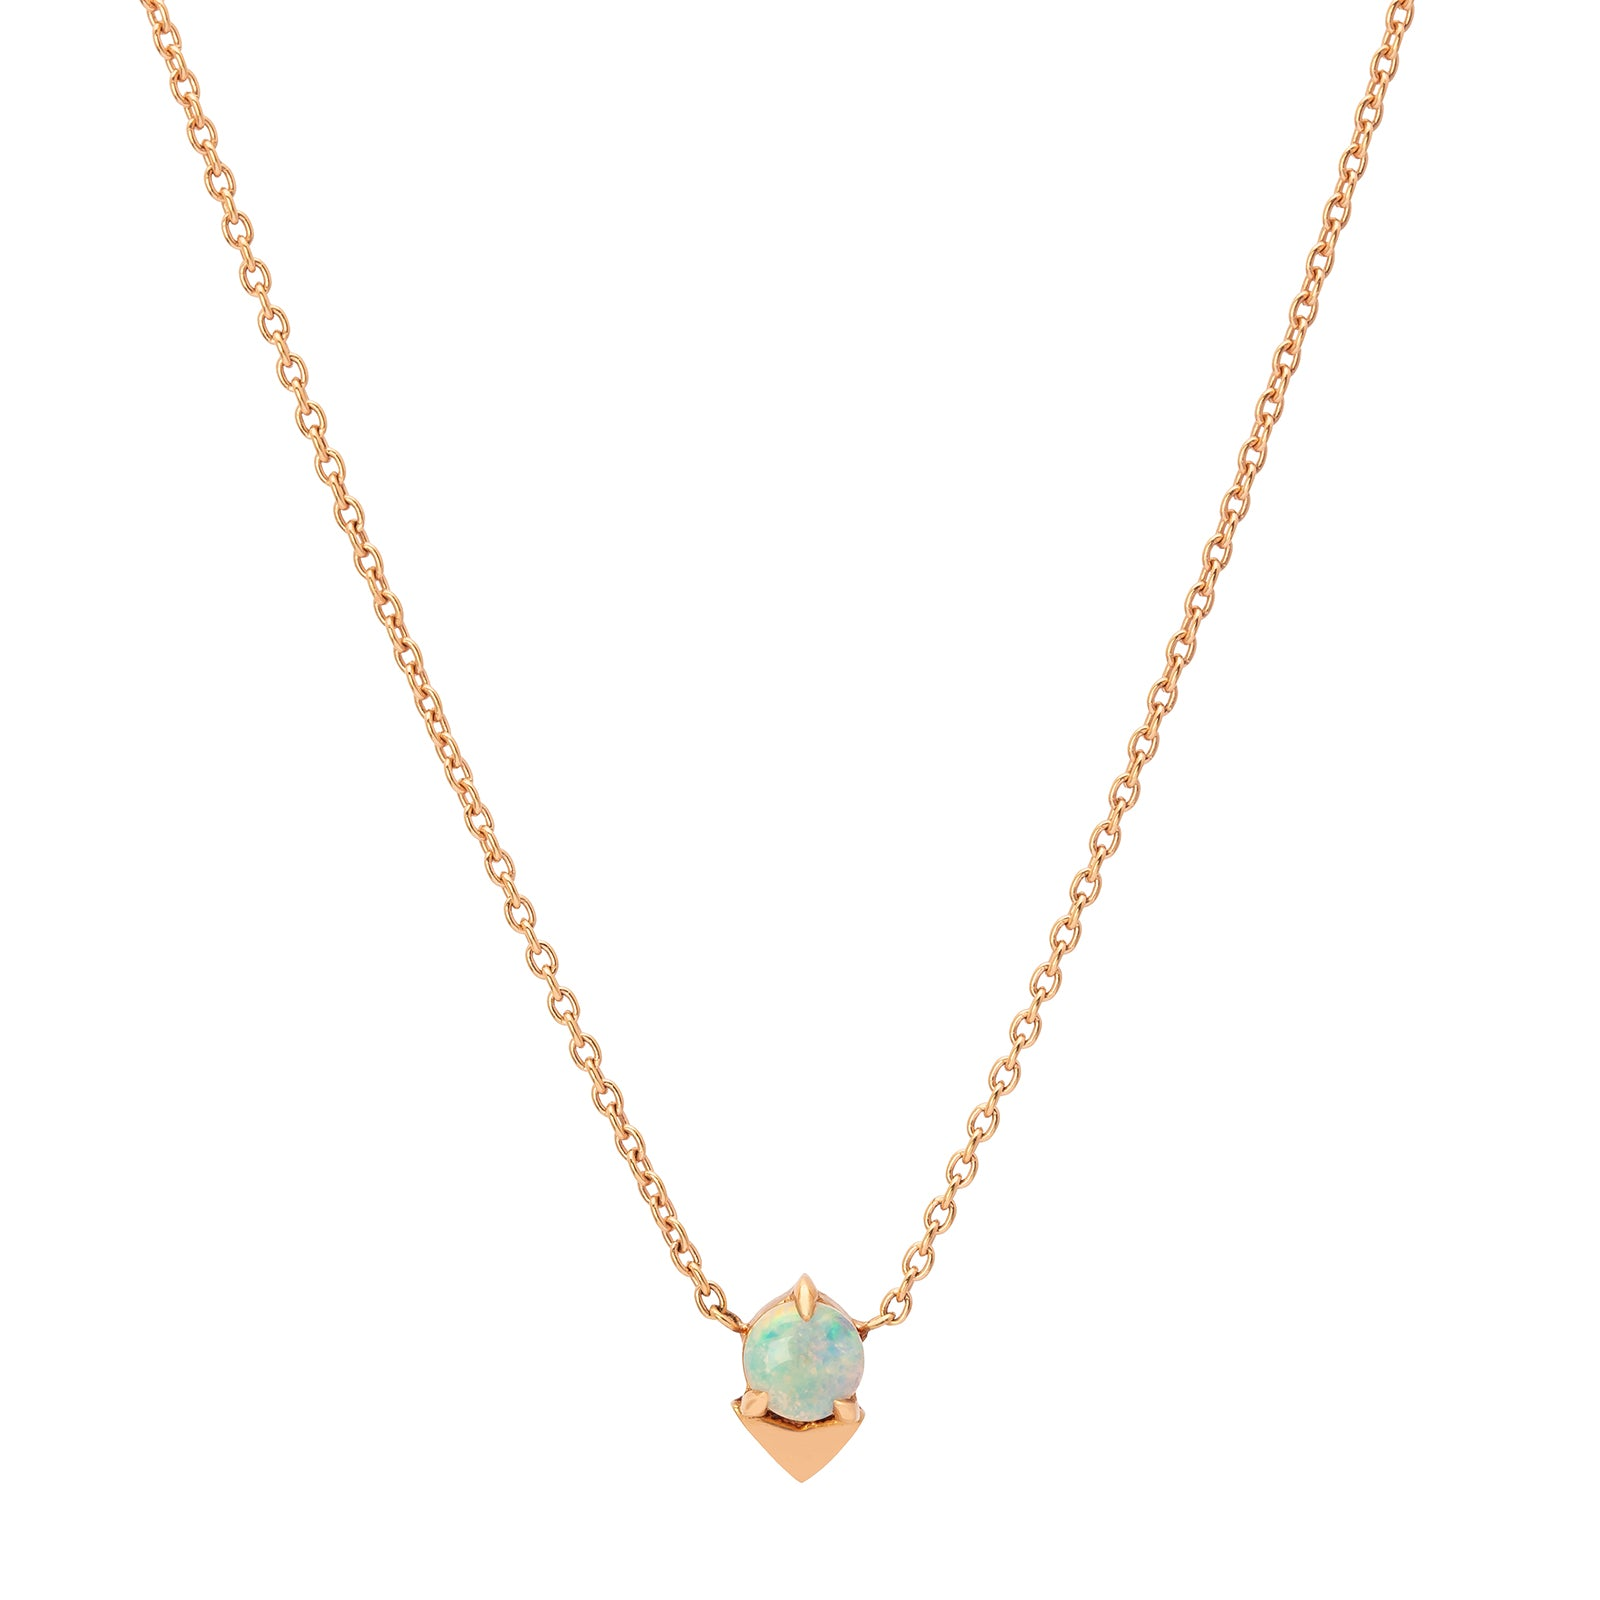 Lizzie Mandler Opal Spike Necklace - Necklaces - Broken English Jewelry